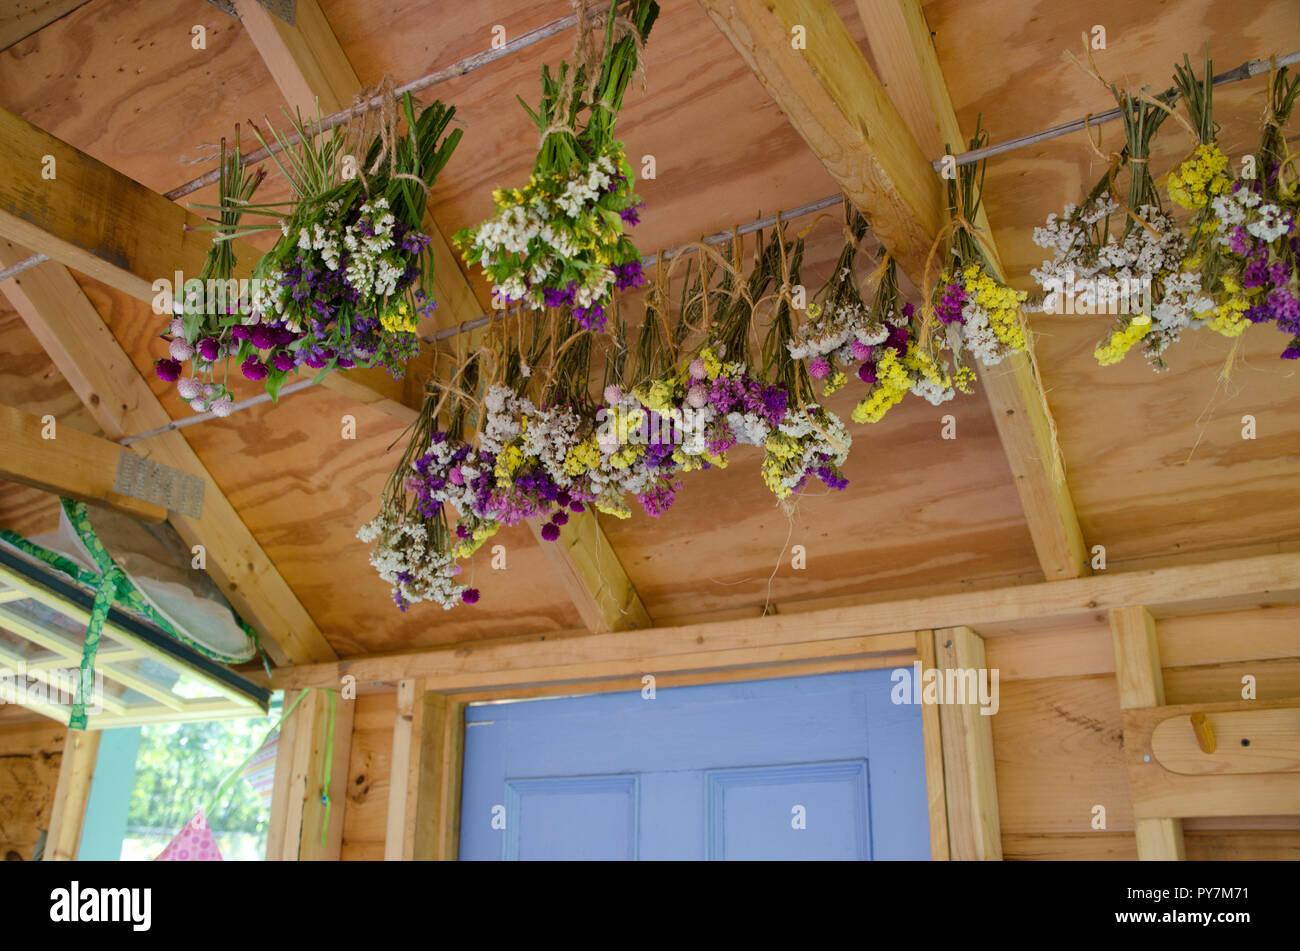 Statice flowers and gomphera drying in garden shed, Community garden, Maine Stock Photo